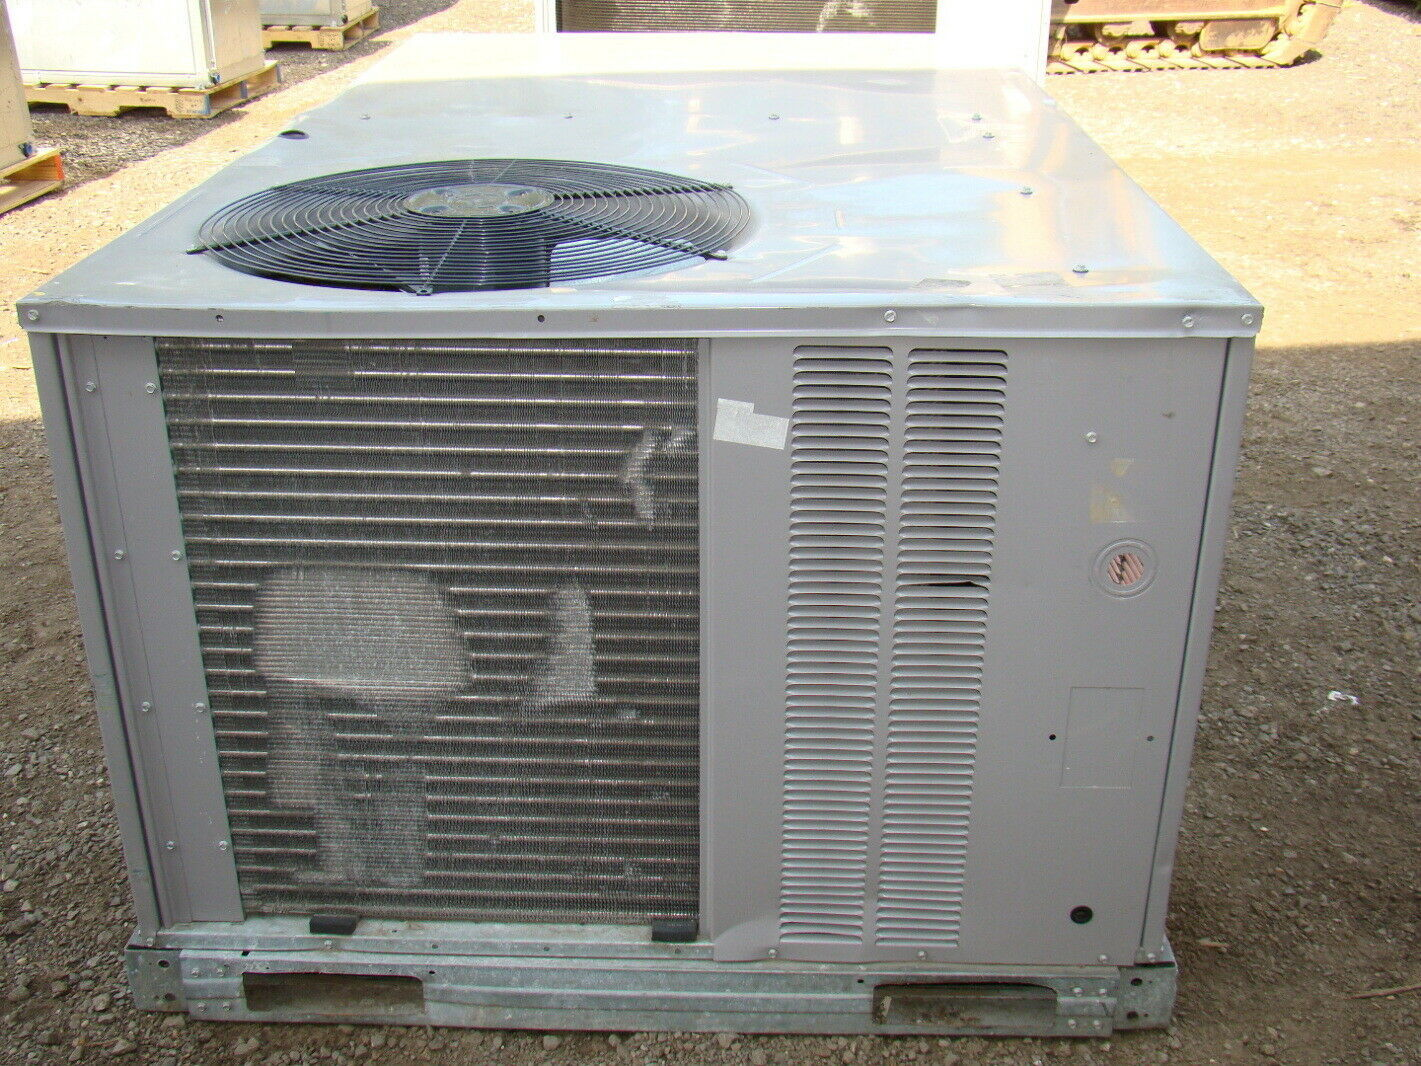 #A0772B Clic Air Conditioners Air Conditioner Database Best 53 2 1 2 Ton Ac Unit photos with 1421x1066 px on helpvideos.info - Air Conditioners, Air Coolers and more